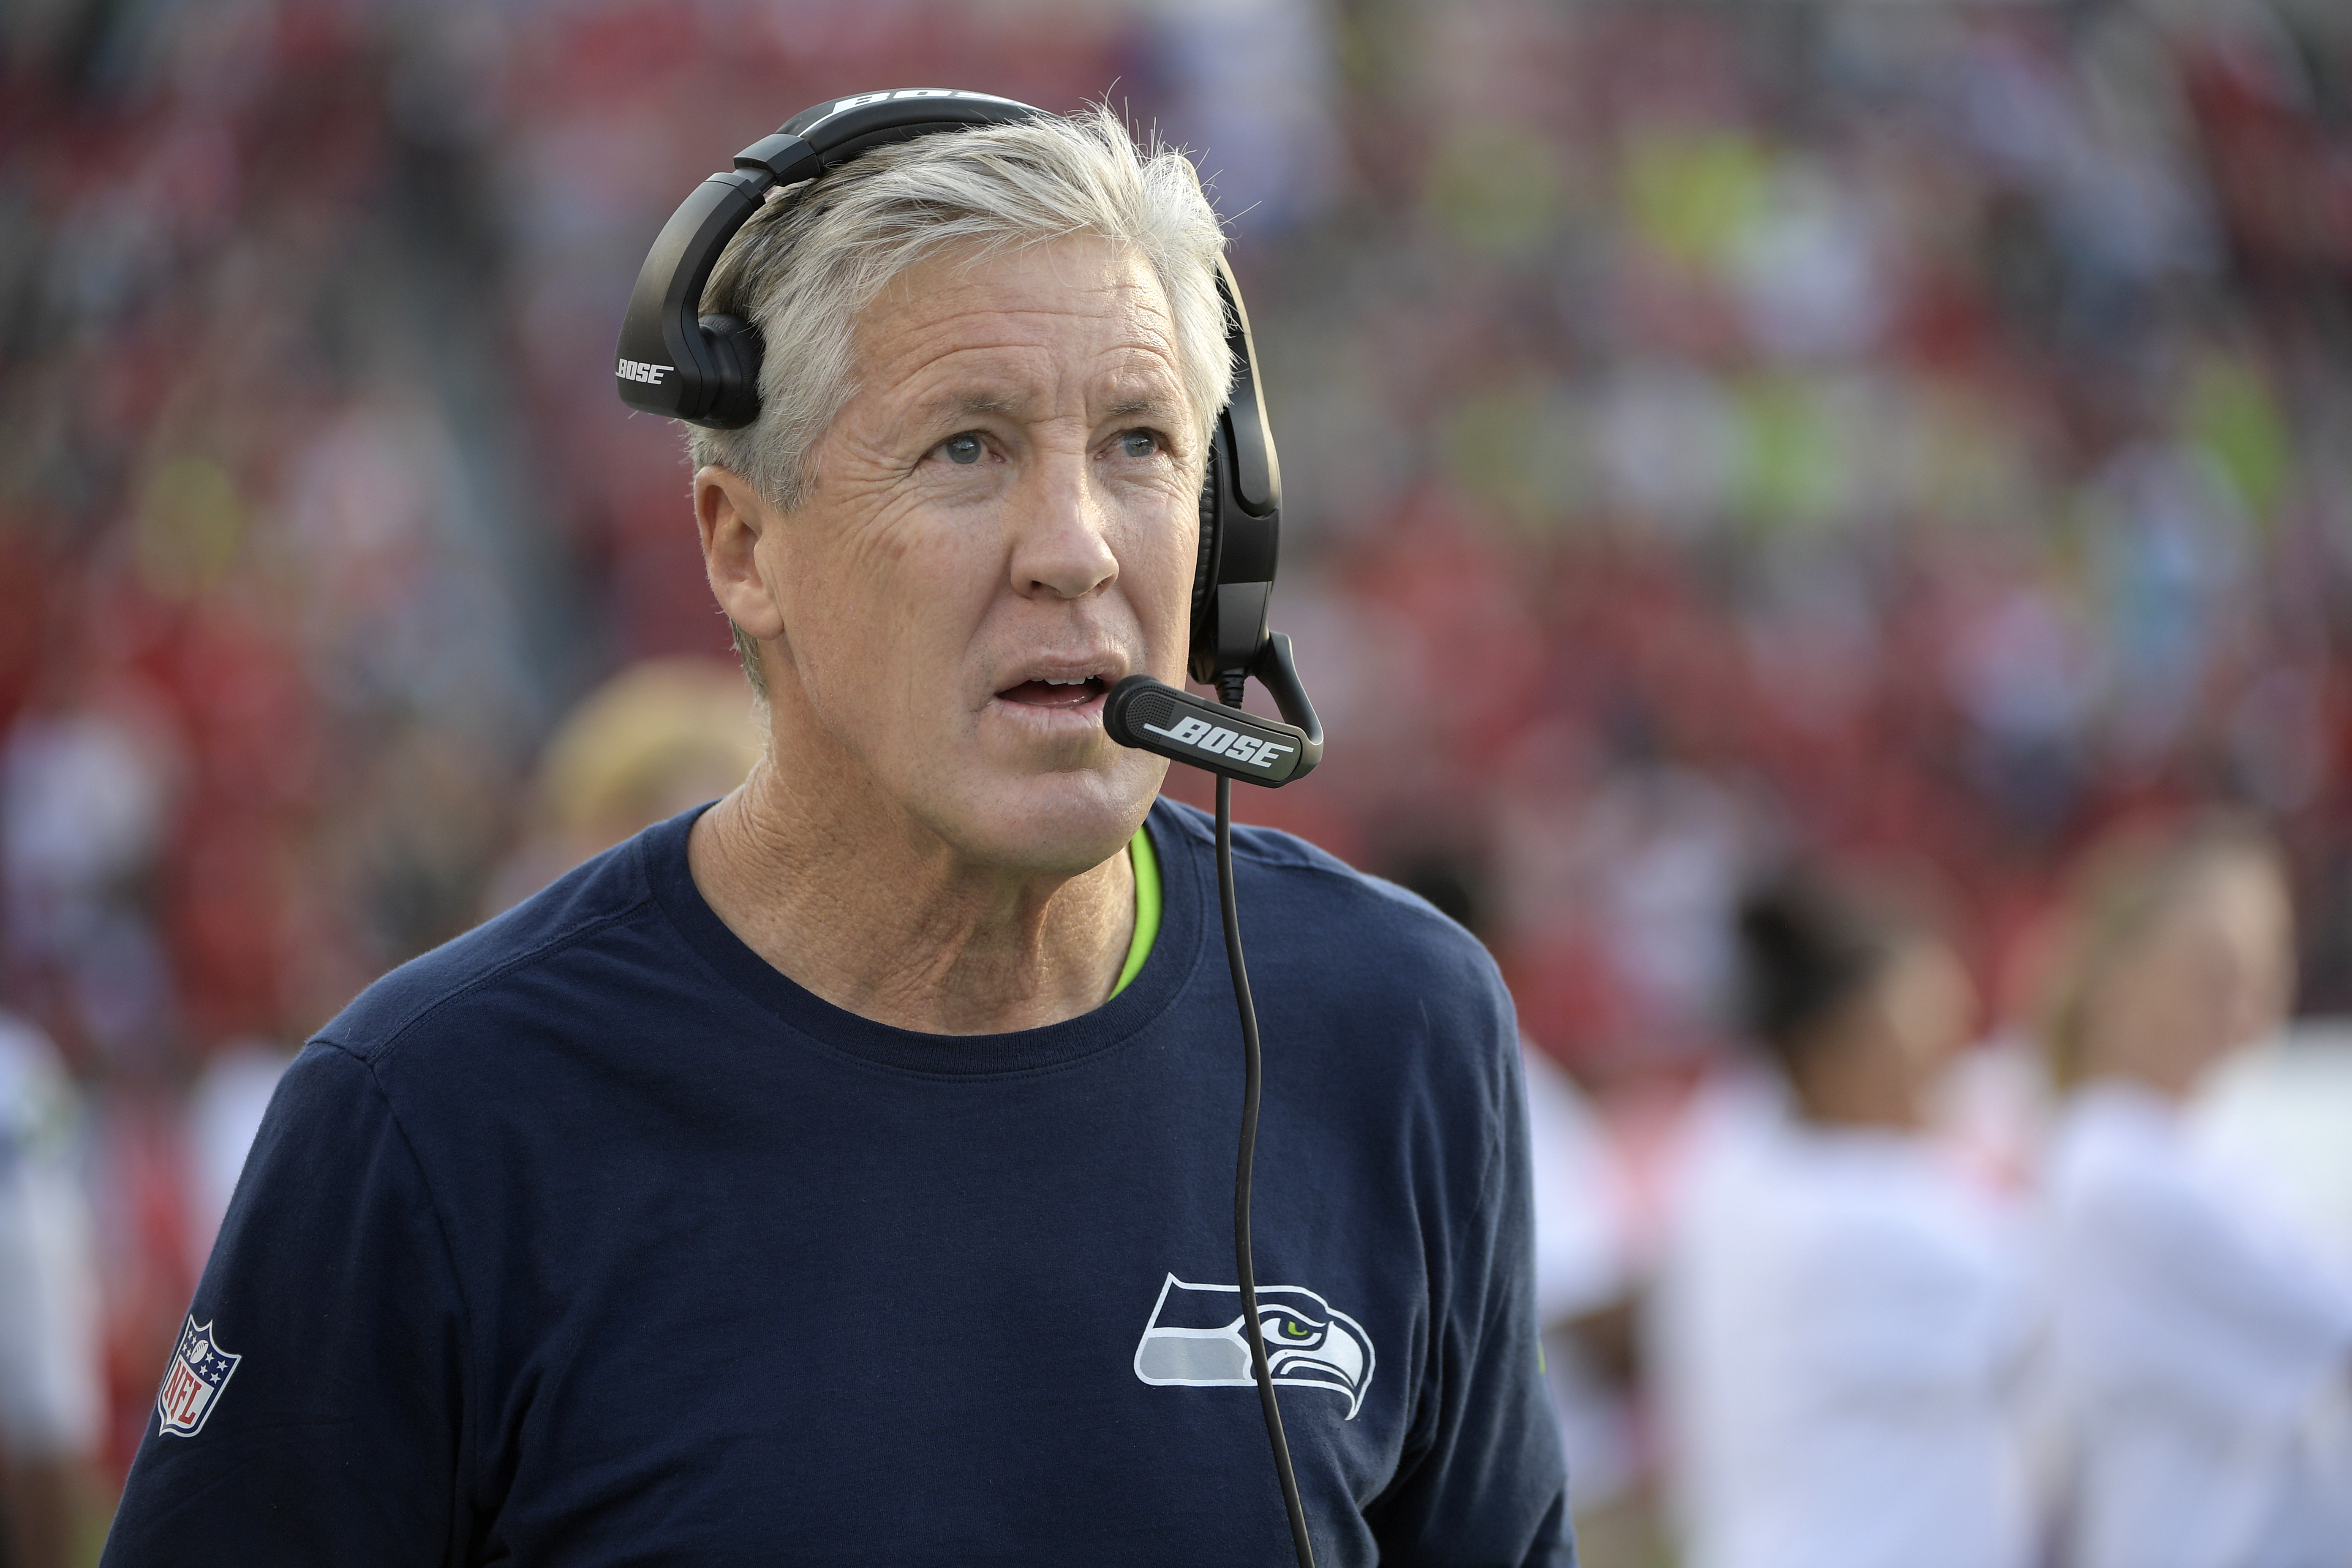 This Nov. 27, 2016 photo shows Seattle Seahawks head coach Pete Carroll walking the sideline prior to the start of an NFL football game against the Tampa Bay Buccaneers in Tampa, Fla. Seattle can wrap up its third NFC West title in the past four seasons w